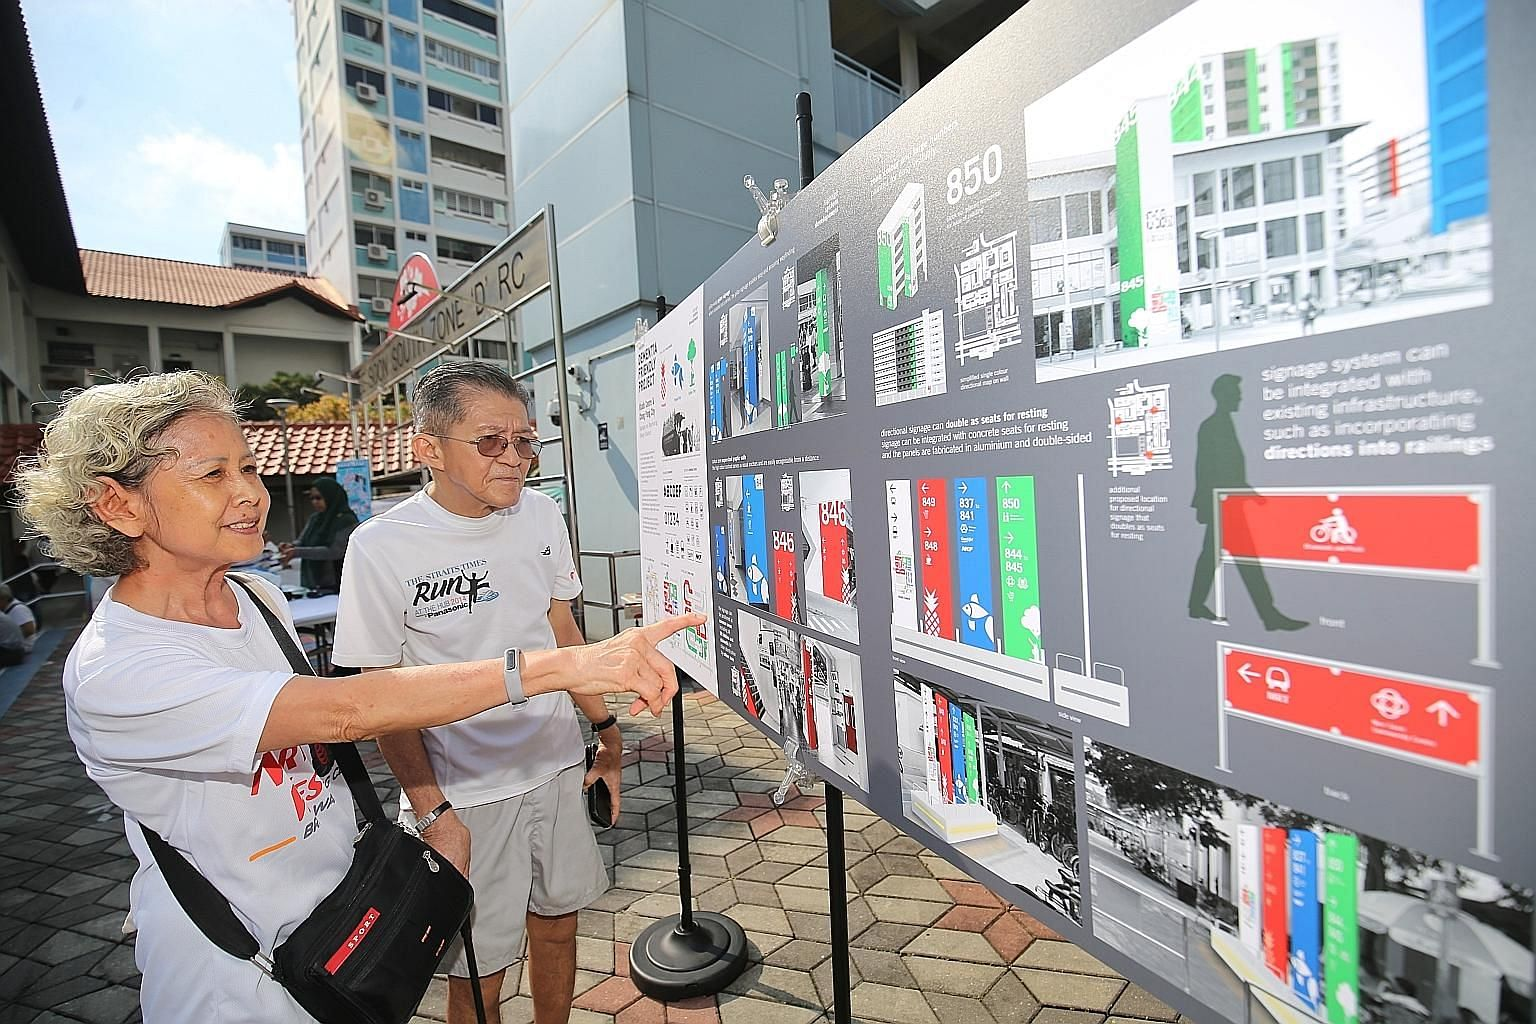 Madam Yong Fui Yin and her husband Ho Shien Joo, who was diagnosed with mild dementia in January, are looking forward to the new features in their Nee Soon South neighbourhood.